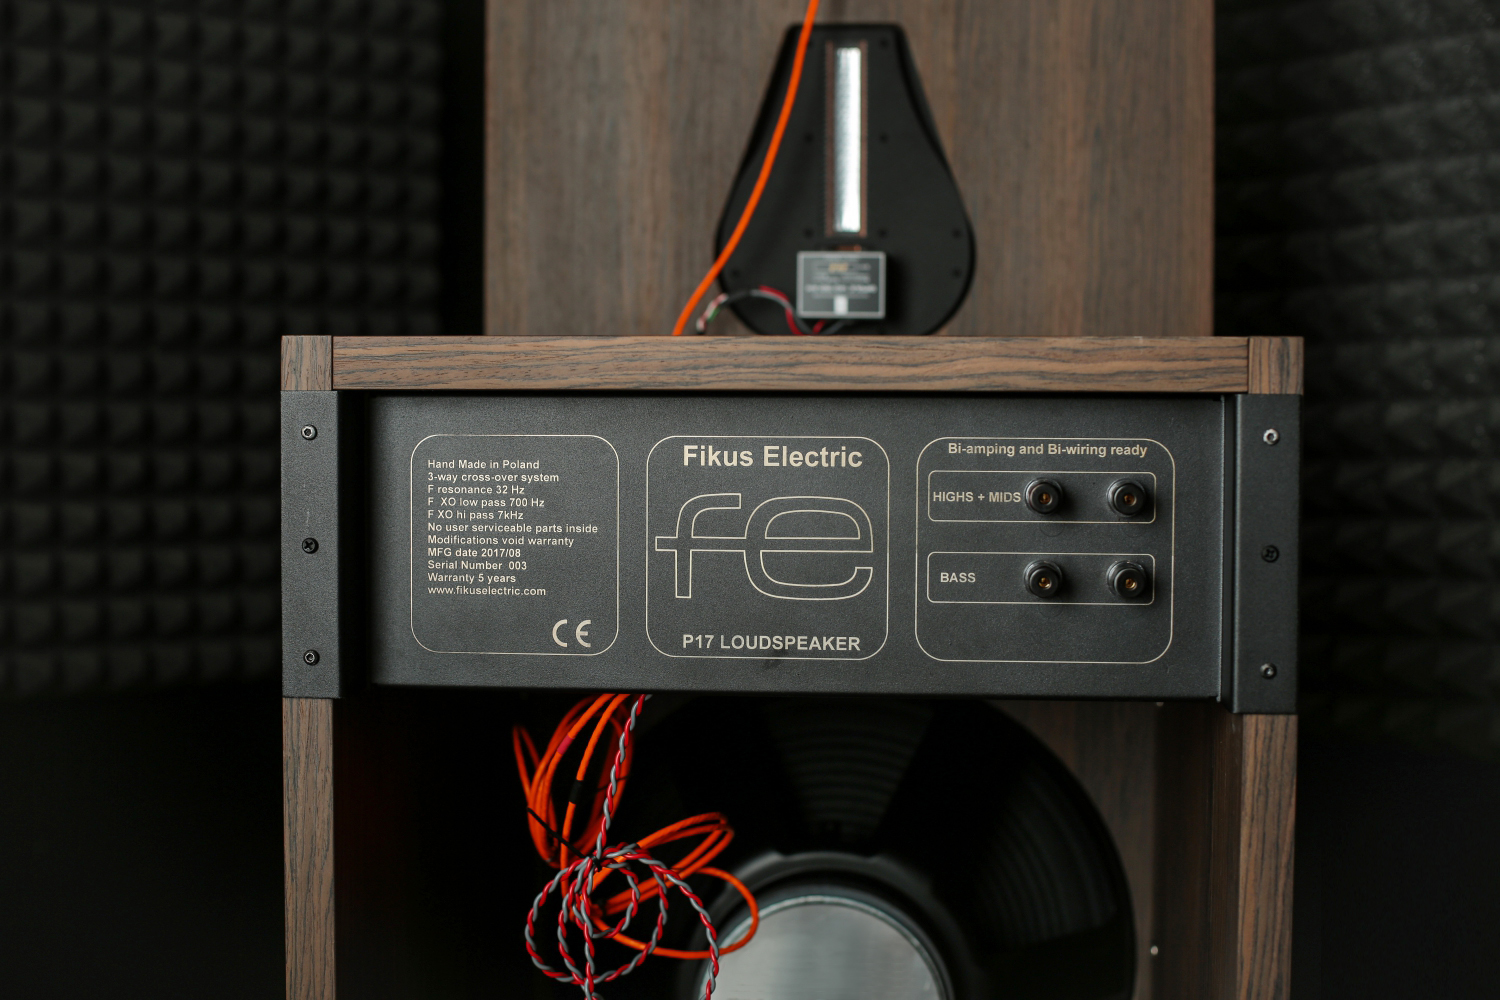 FE SPEAKERS terminals